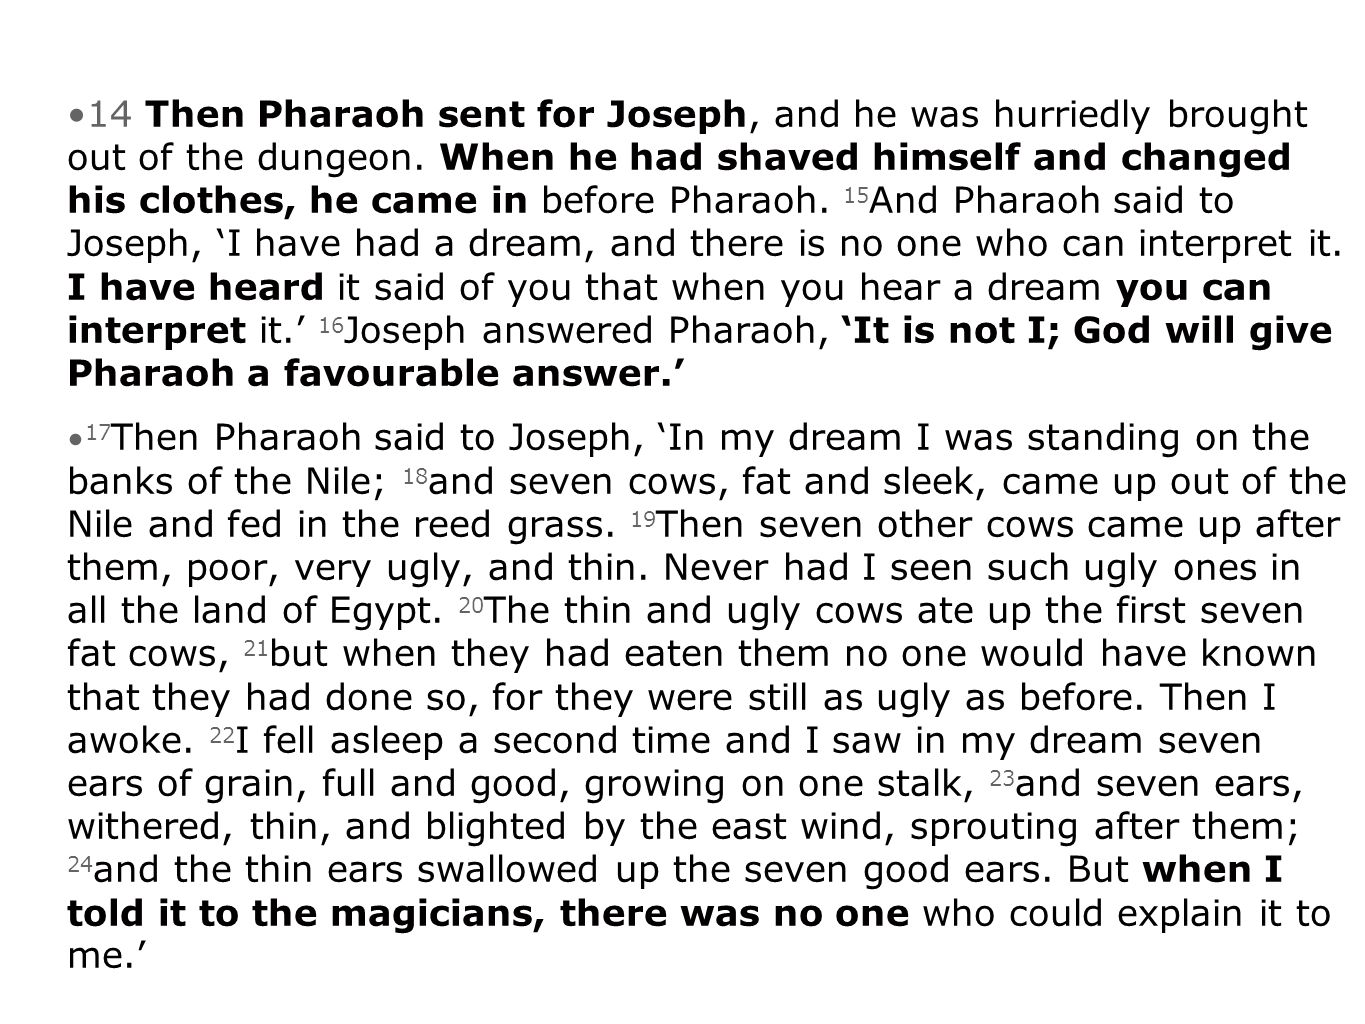 14 Then Pharaoh sent for Joseph, and he was hurriedly brought out of the dungeon.